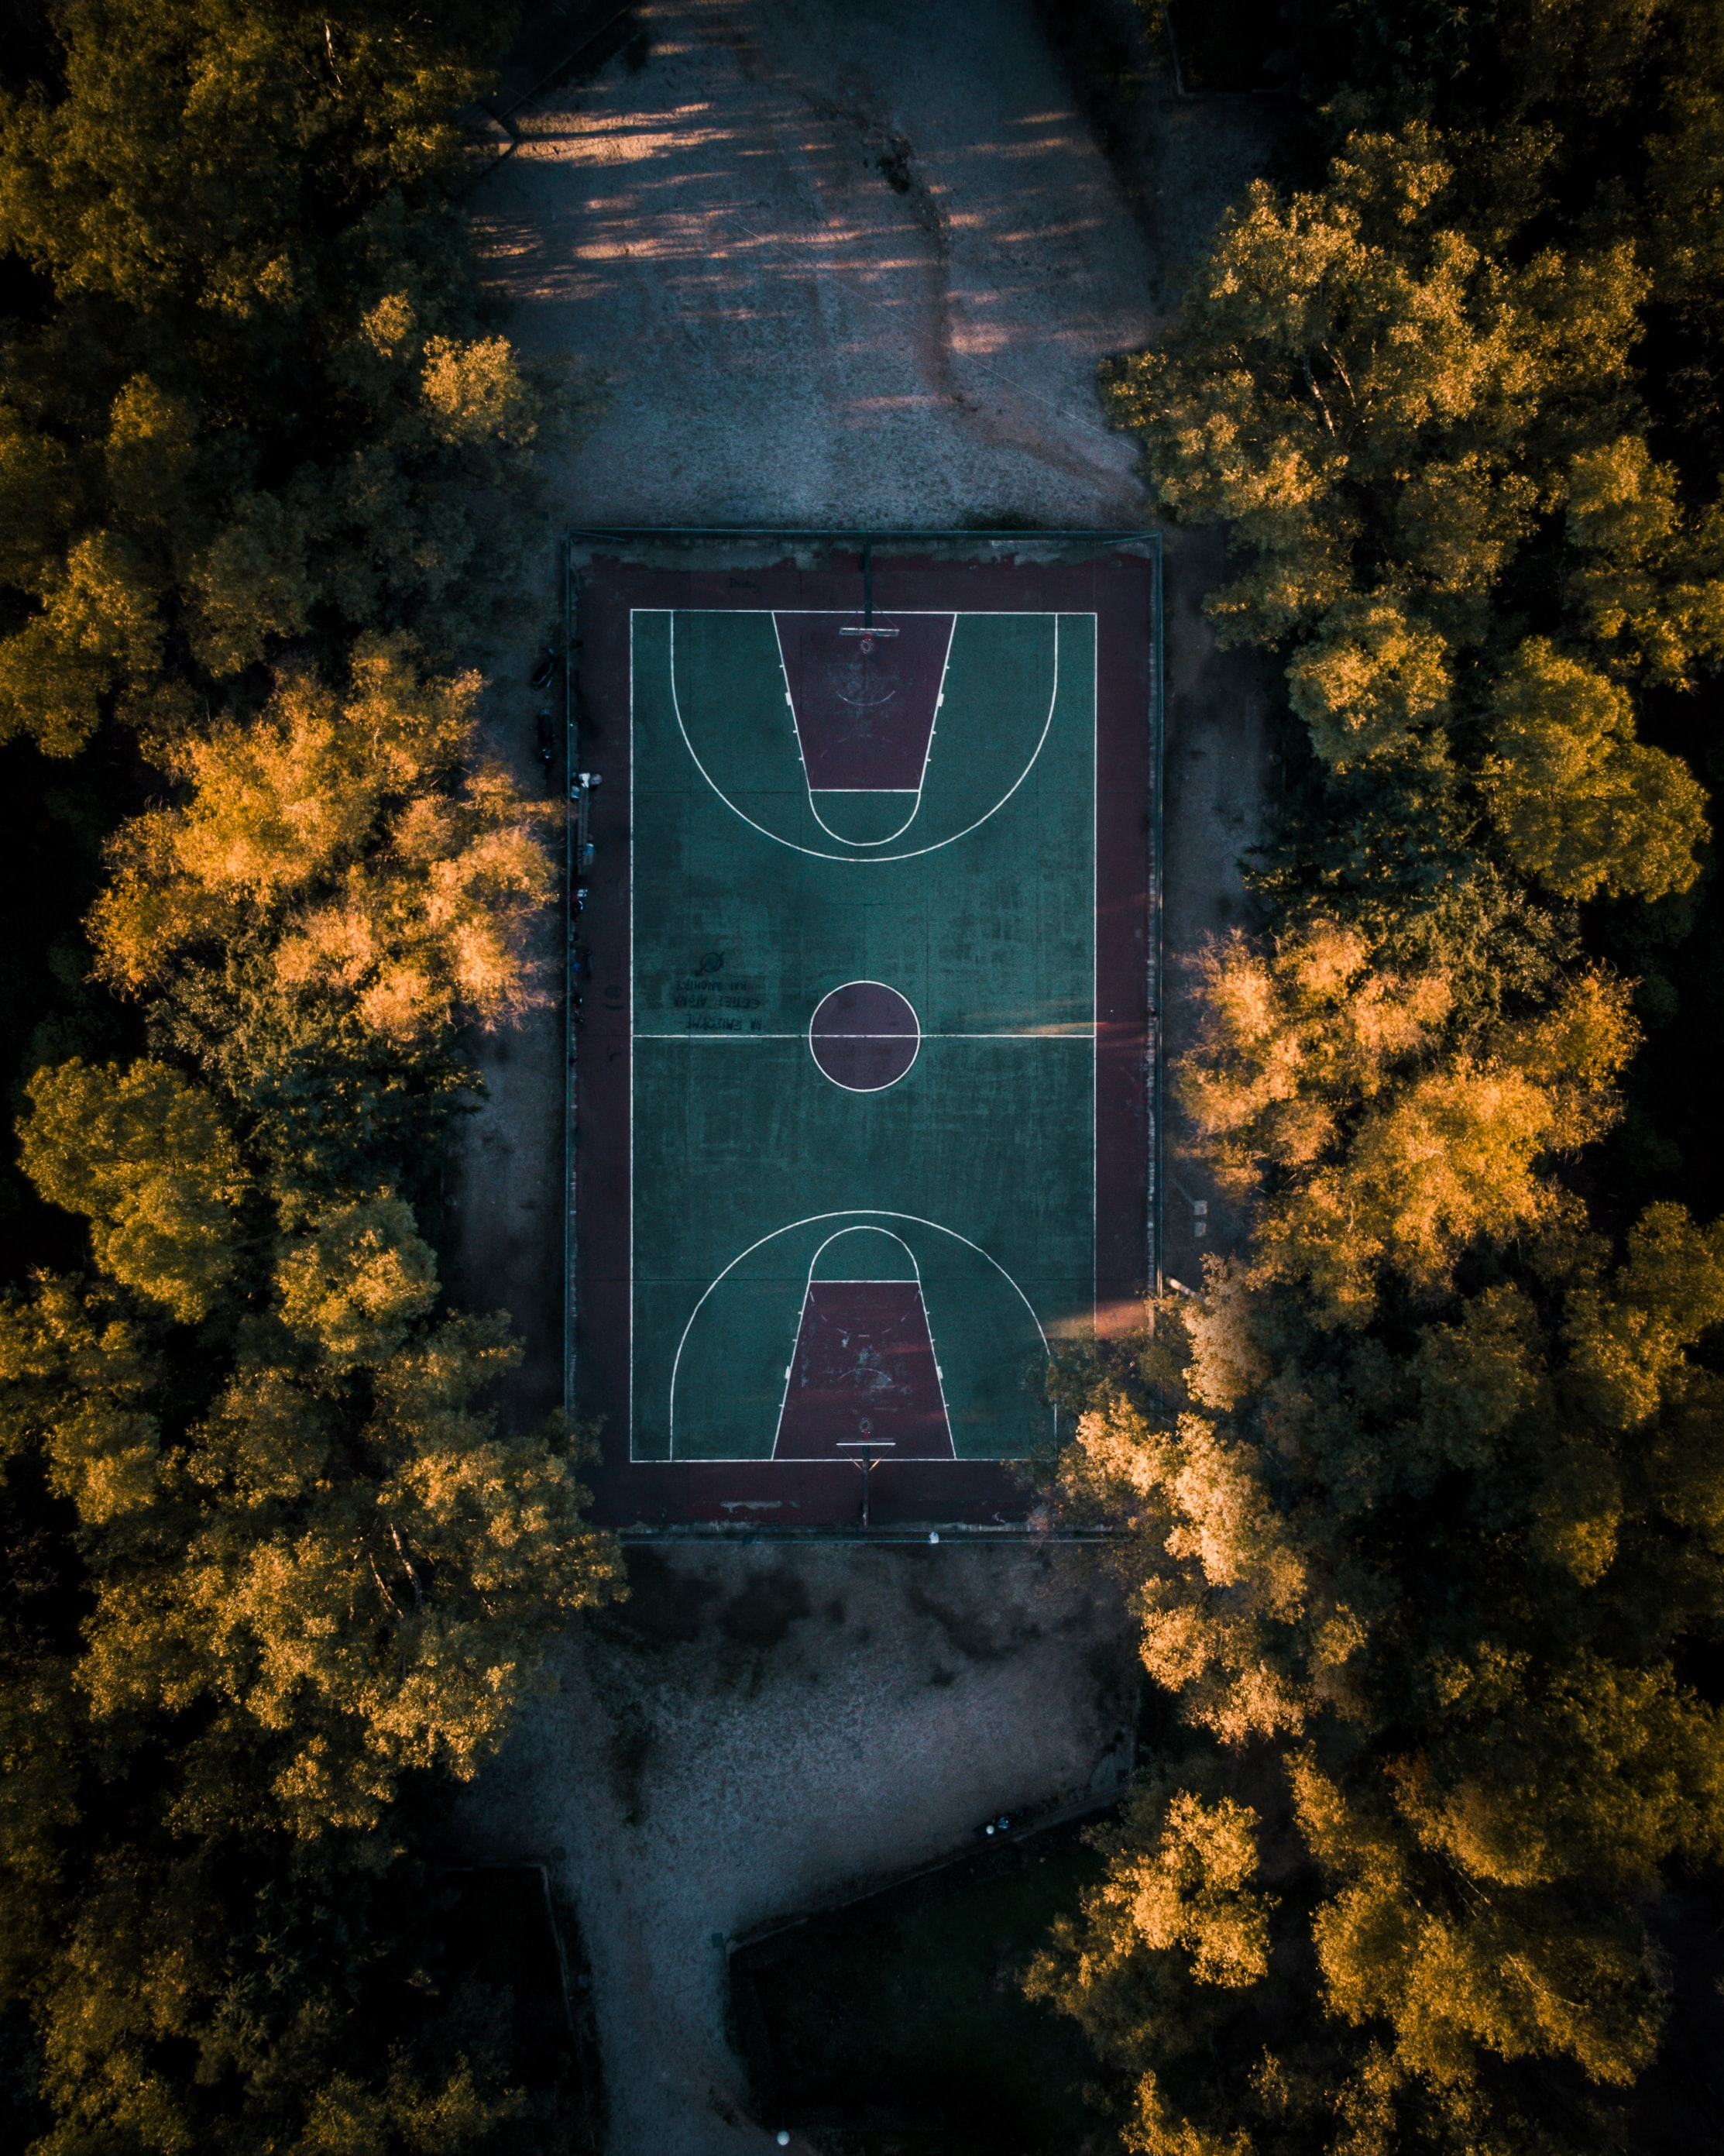 96373 download wallpaper Sports, Trees, Basketball, View From Above, Playground, Platform, Basketball Playground, Basketball Court screensavers and pictures for free